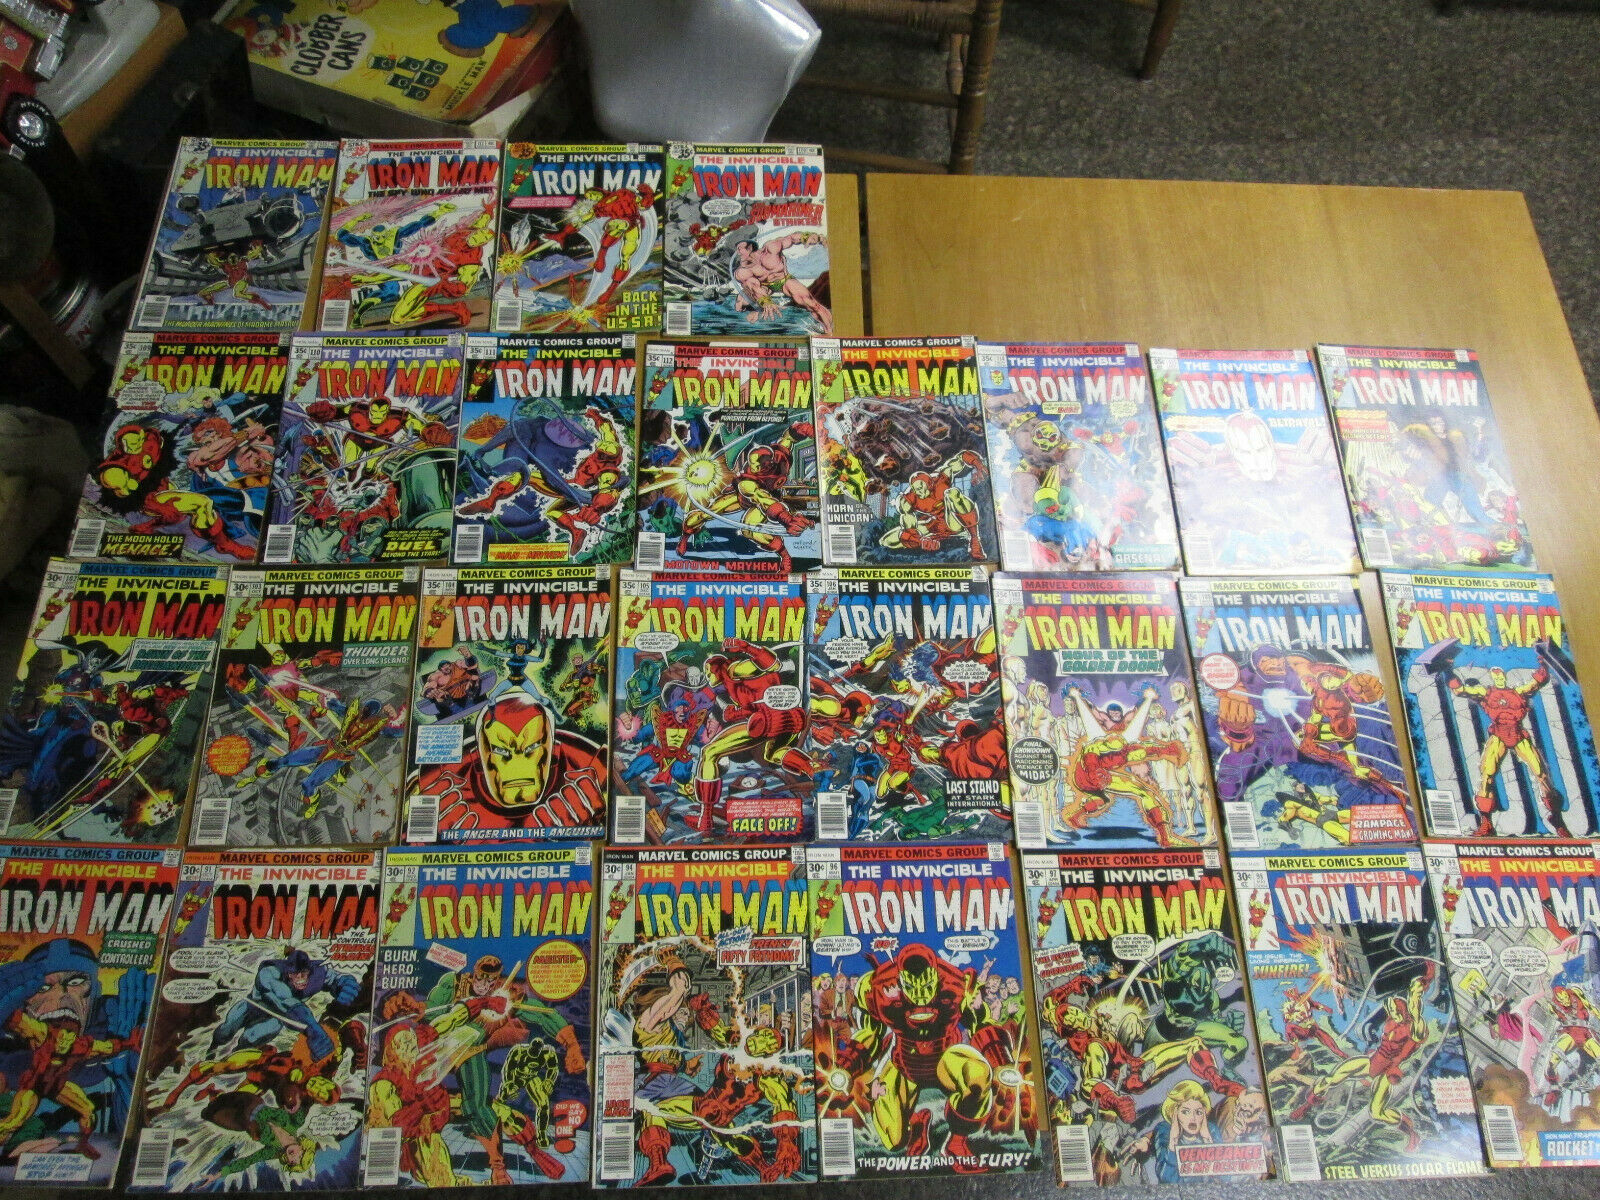 LOT OF 28  IRON MAN #90#91#92#943#96#97#98#99#100#101#102#103#104#105#106+MORE